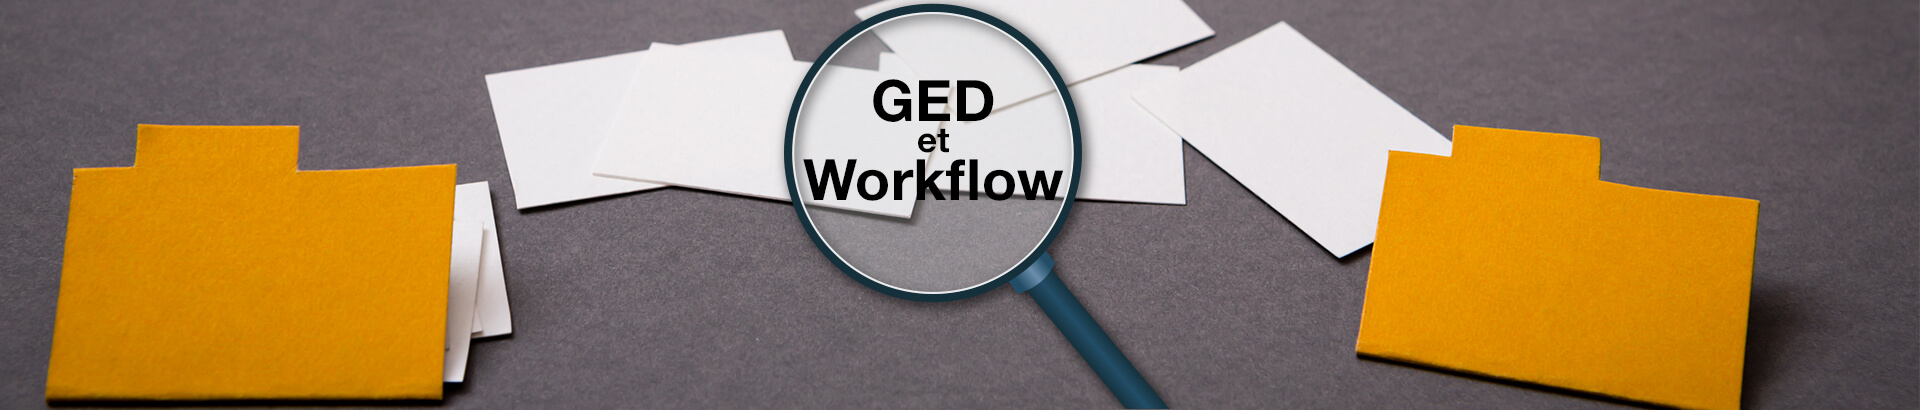 BRZ GED et Workflows